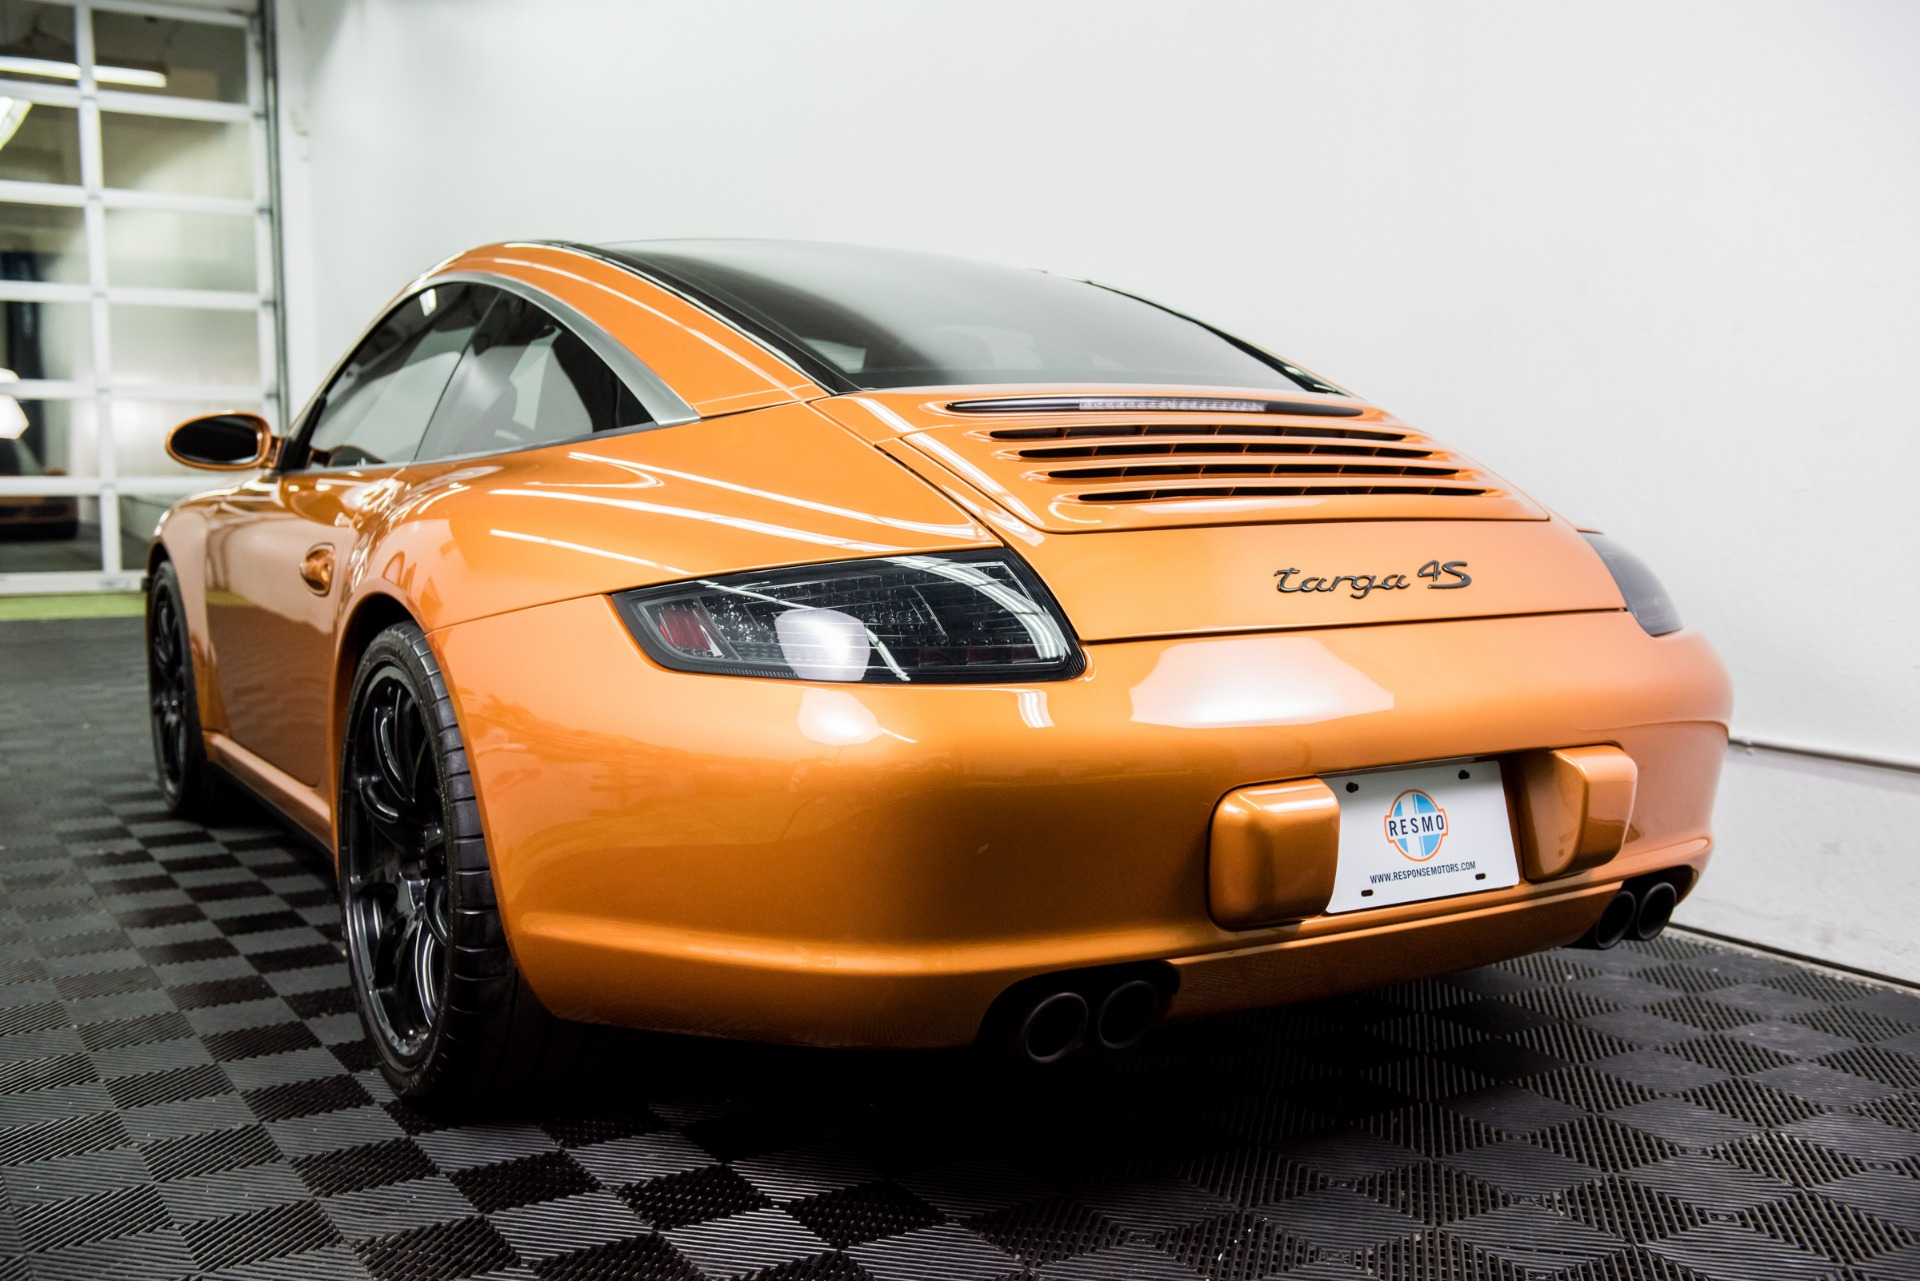 Used 2007 Porsche 911 Targa 4S Used 2007 Porsche 911 Targa 4S for sale Sold at Response Motors in Mountain View CA 6